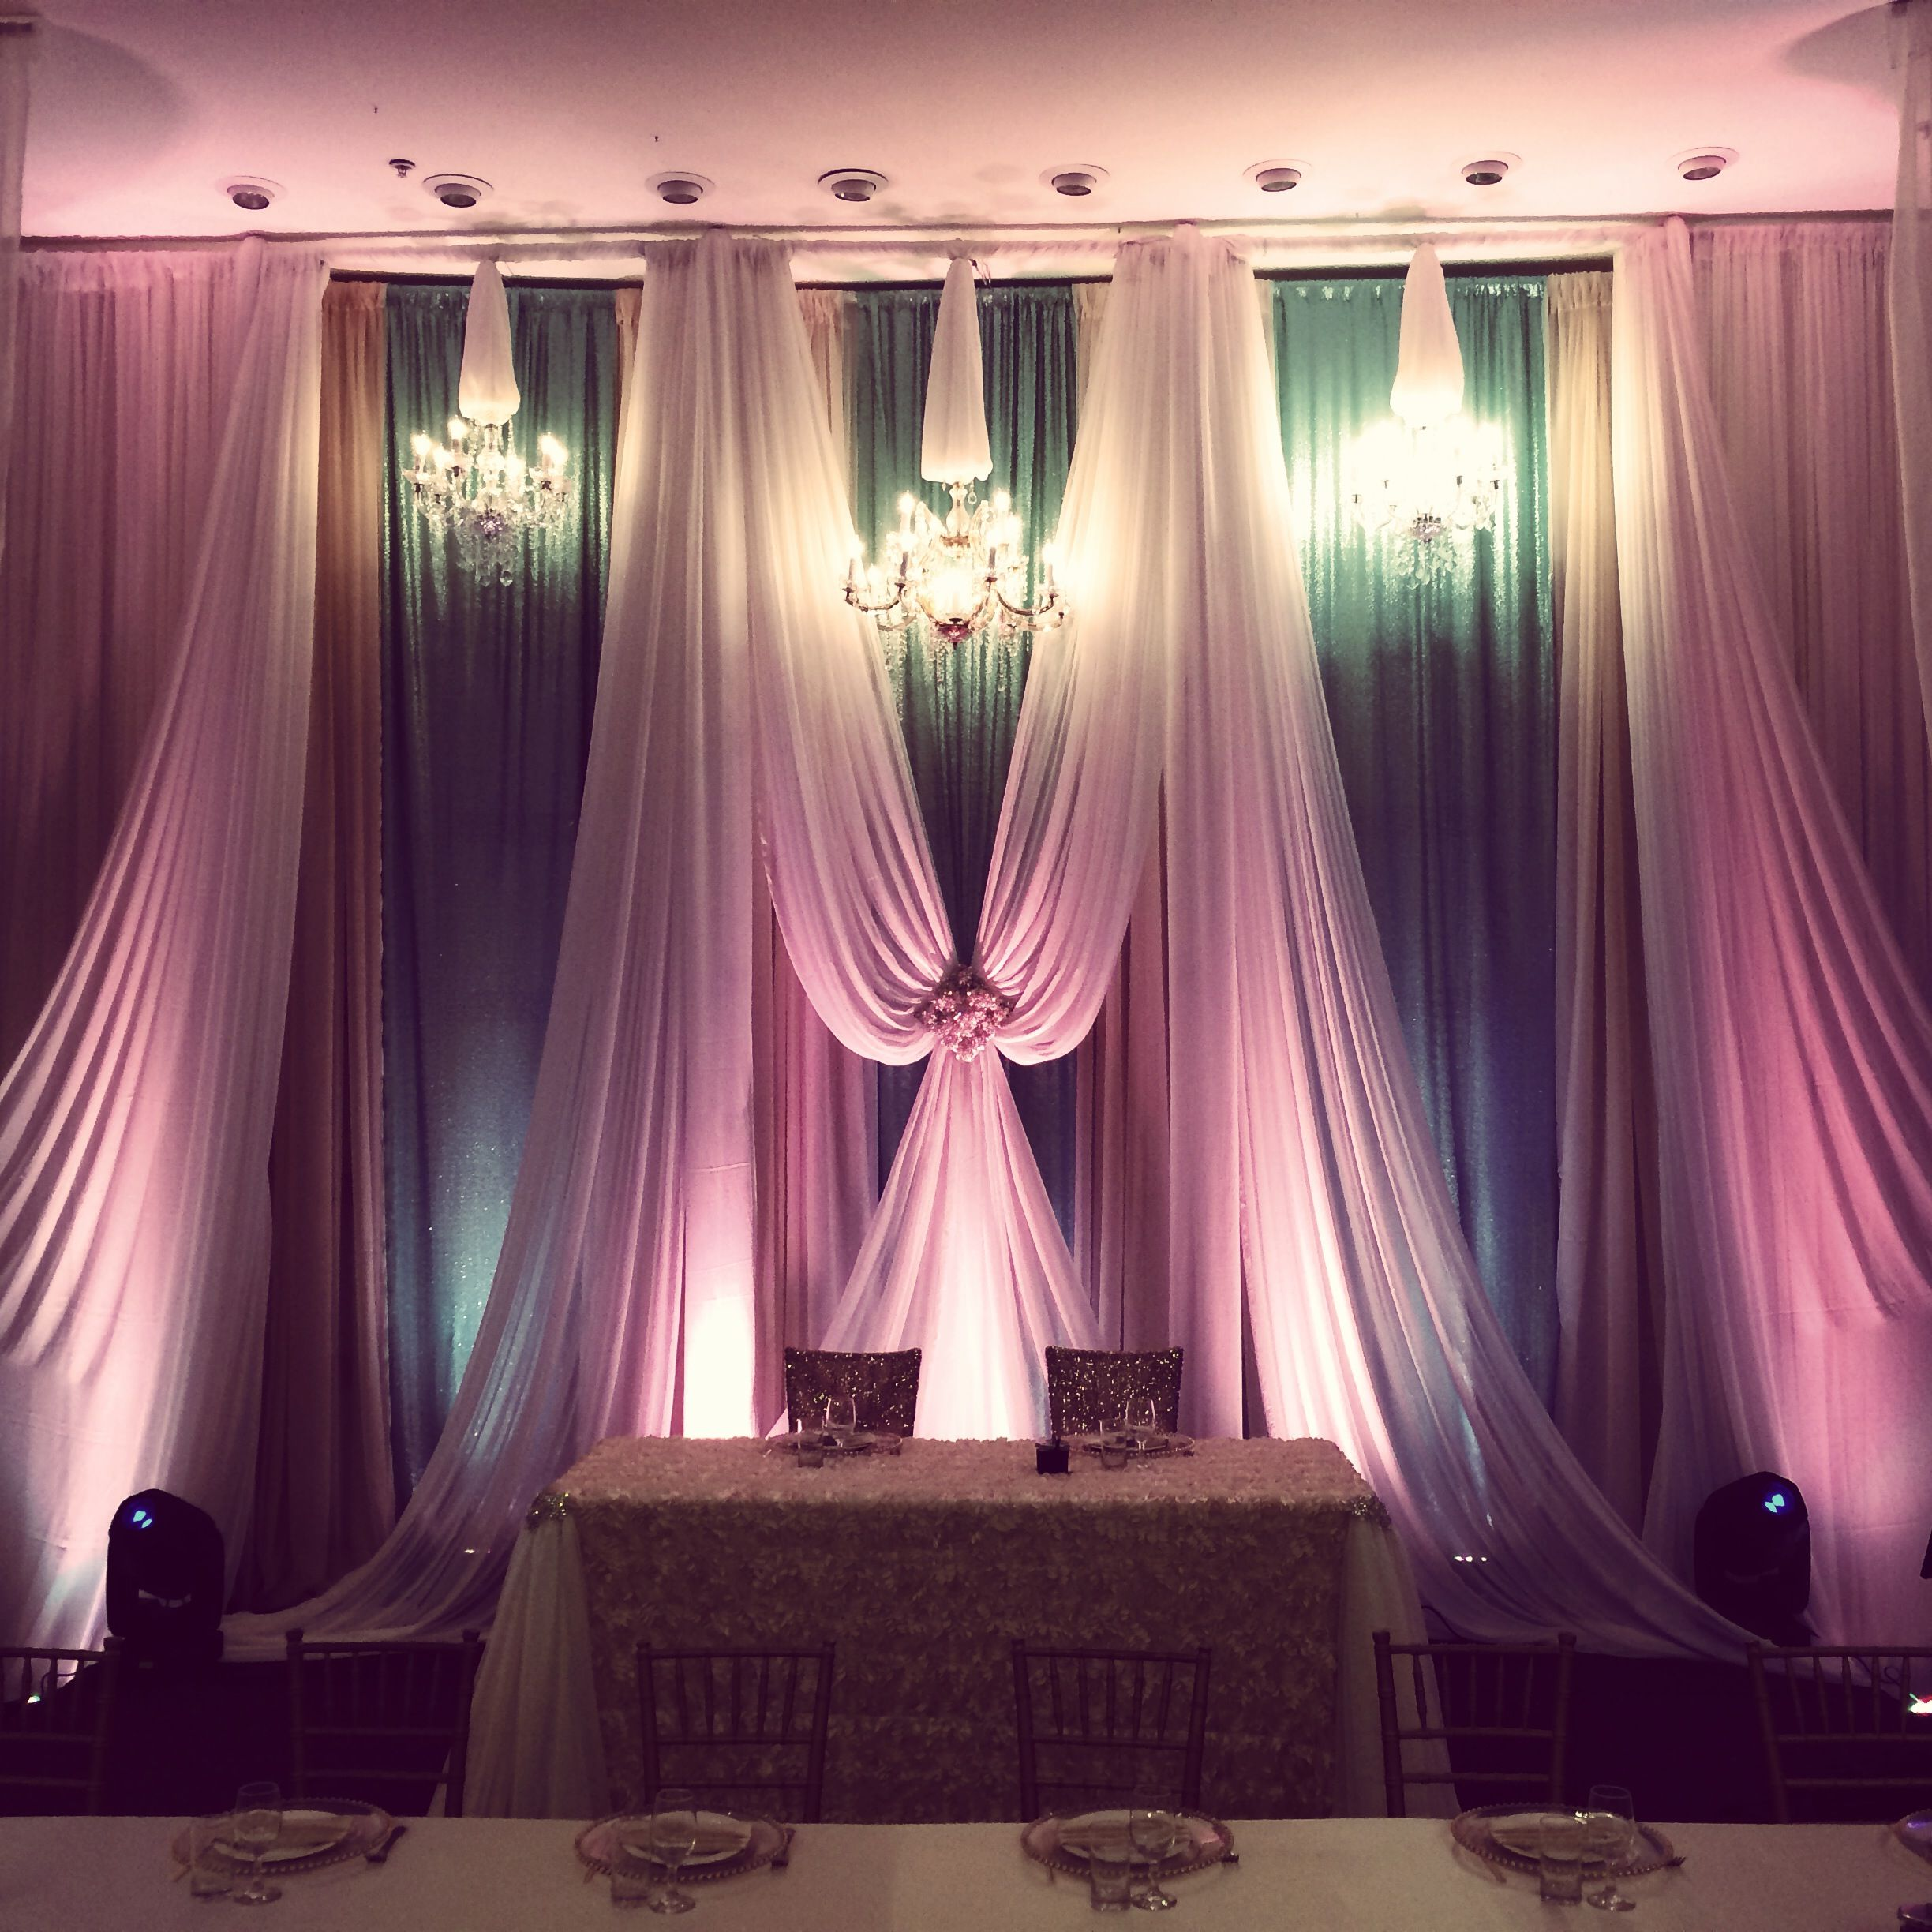 Diy Wedding Backdrop With Lights Mint And Coral Drapery At Cupertino Dynasty 1000 Fine